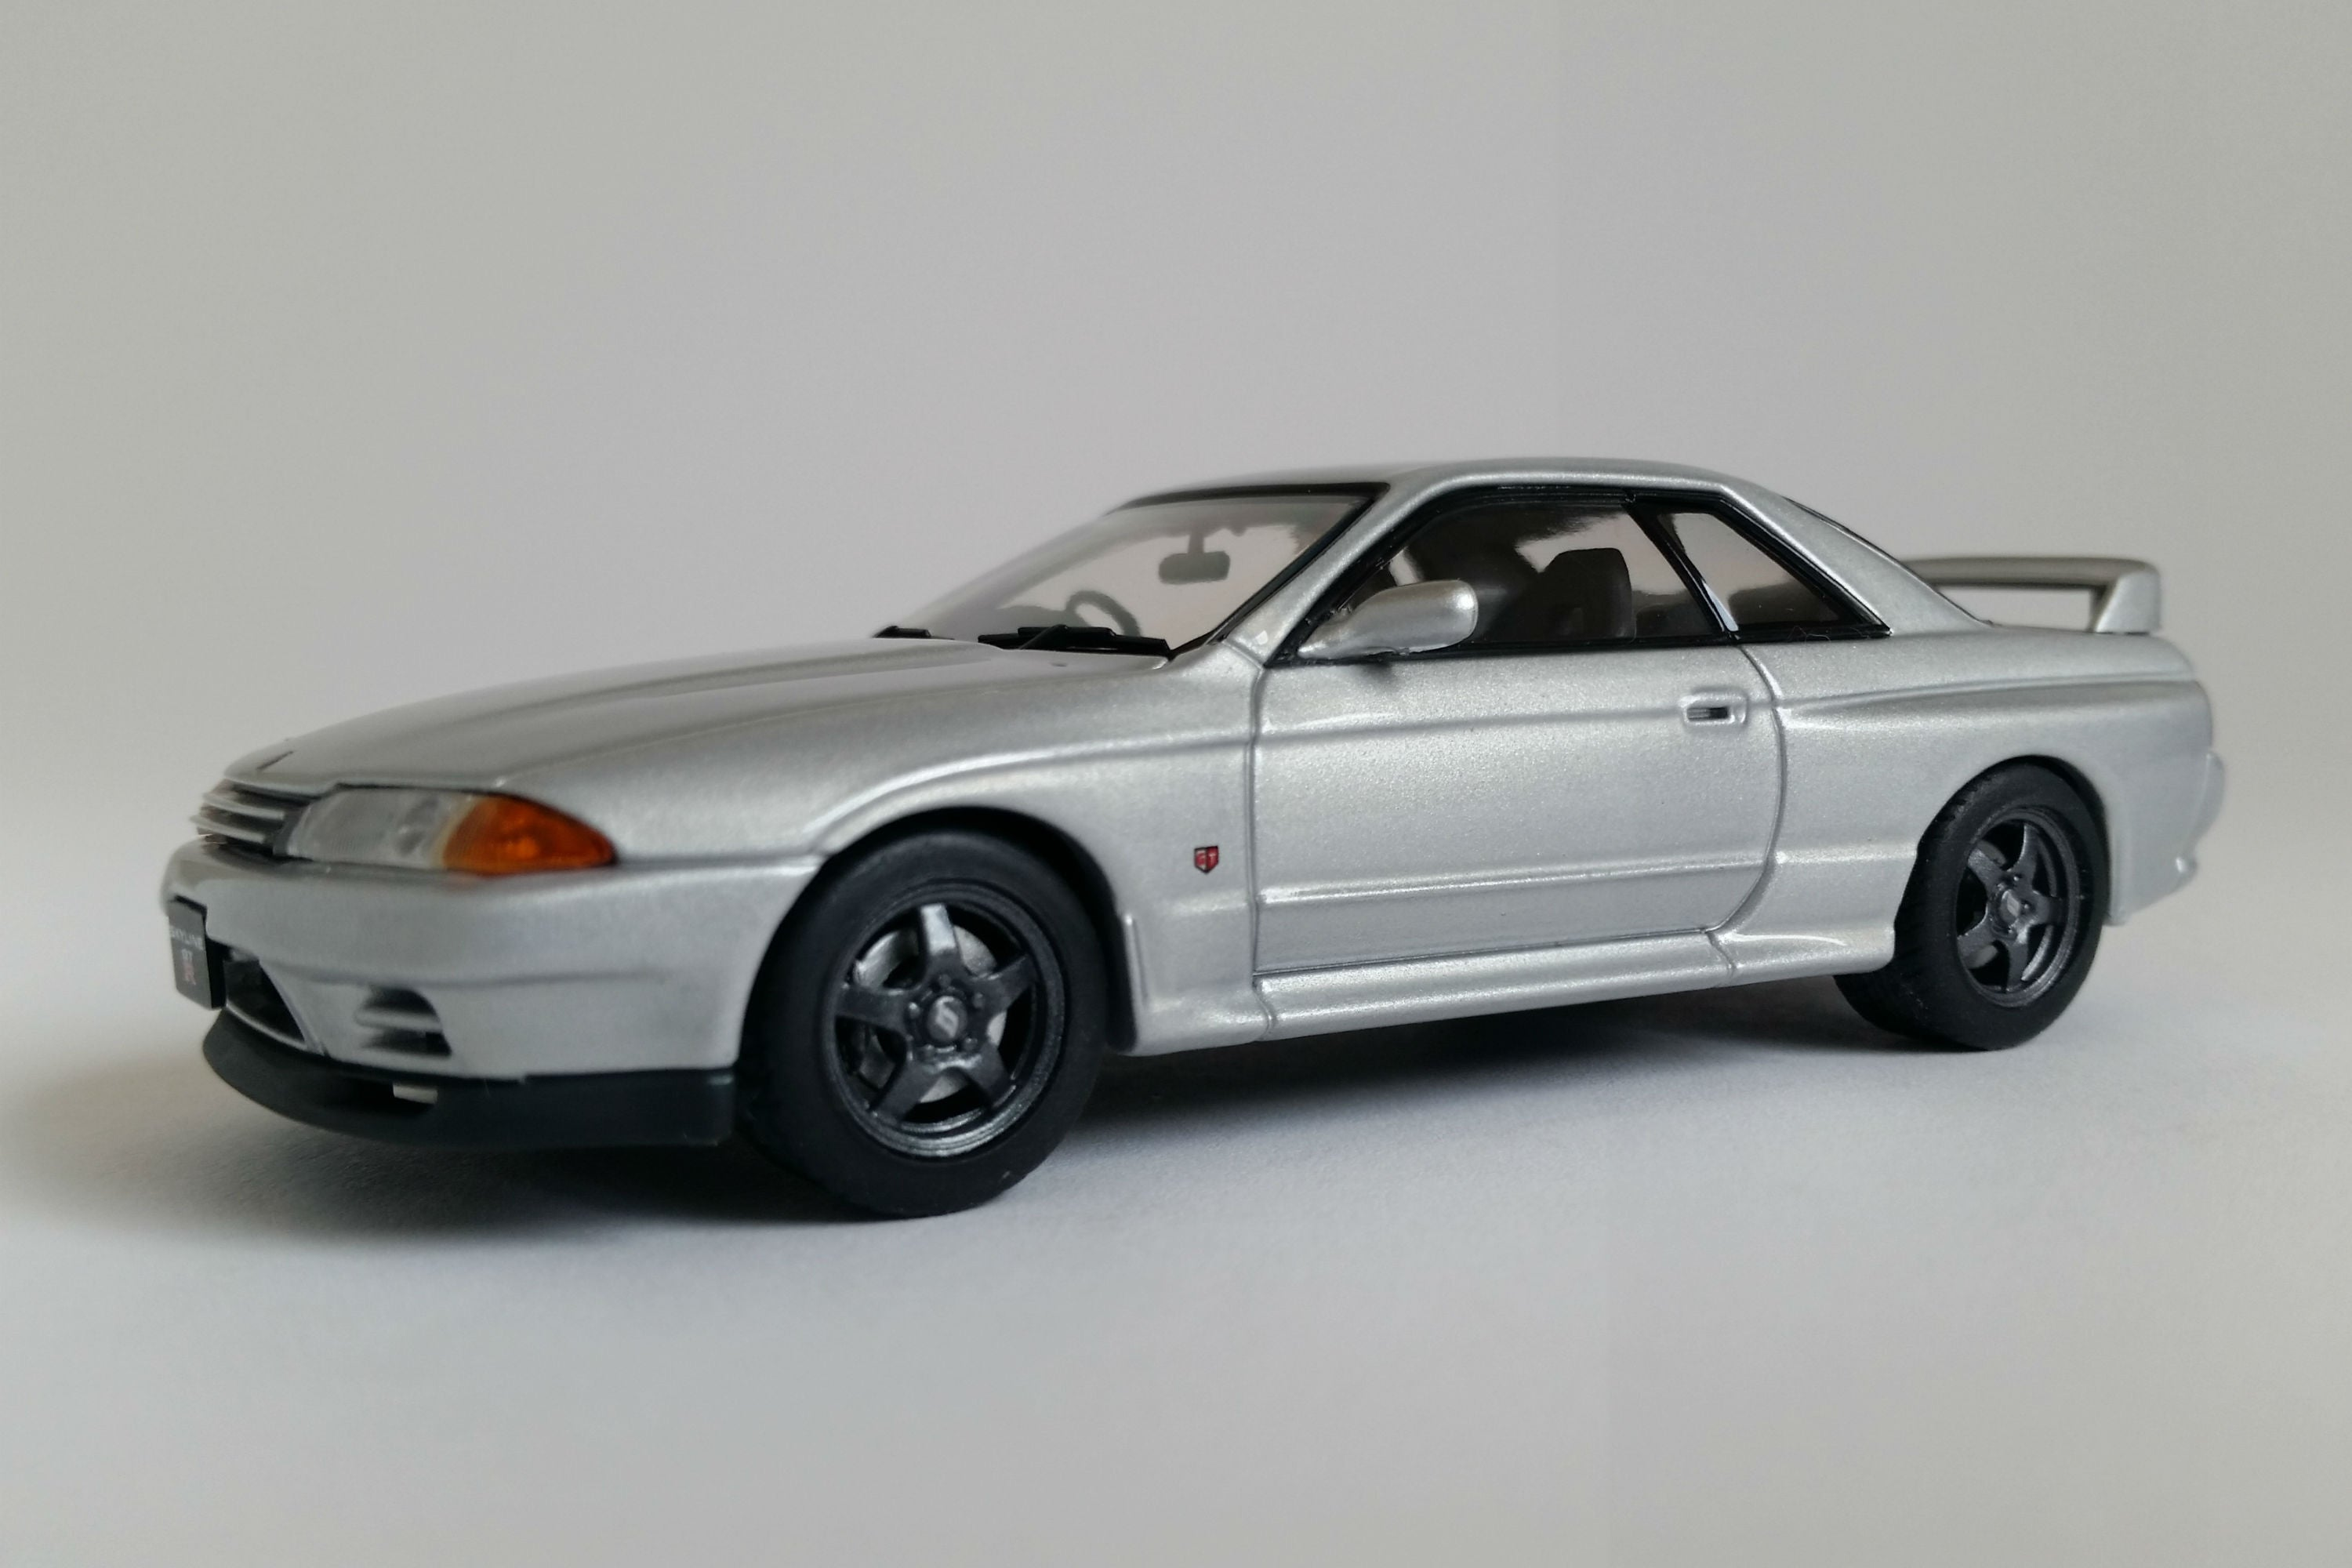 nissan skyline gt r r32 1 43 scale diecast model car. Black Bedroom Furniture Sets. Home Design Ideas